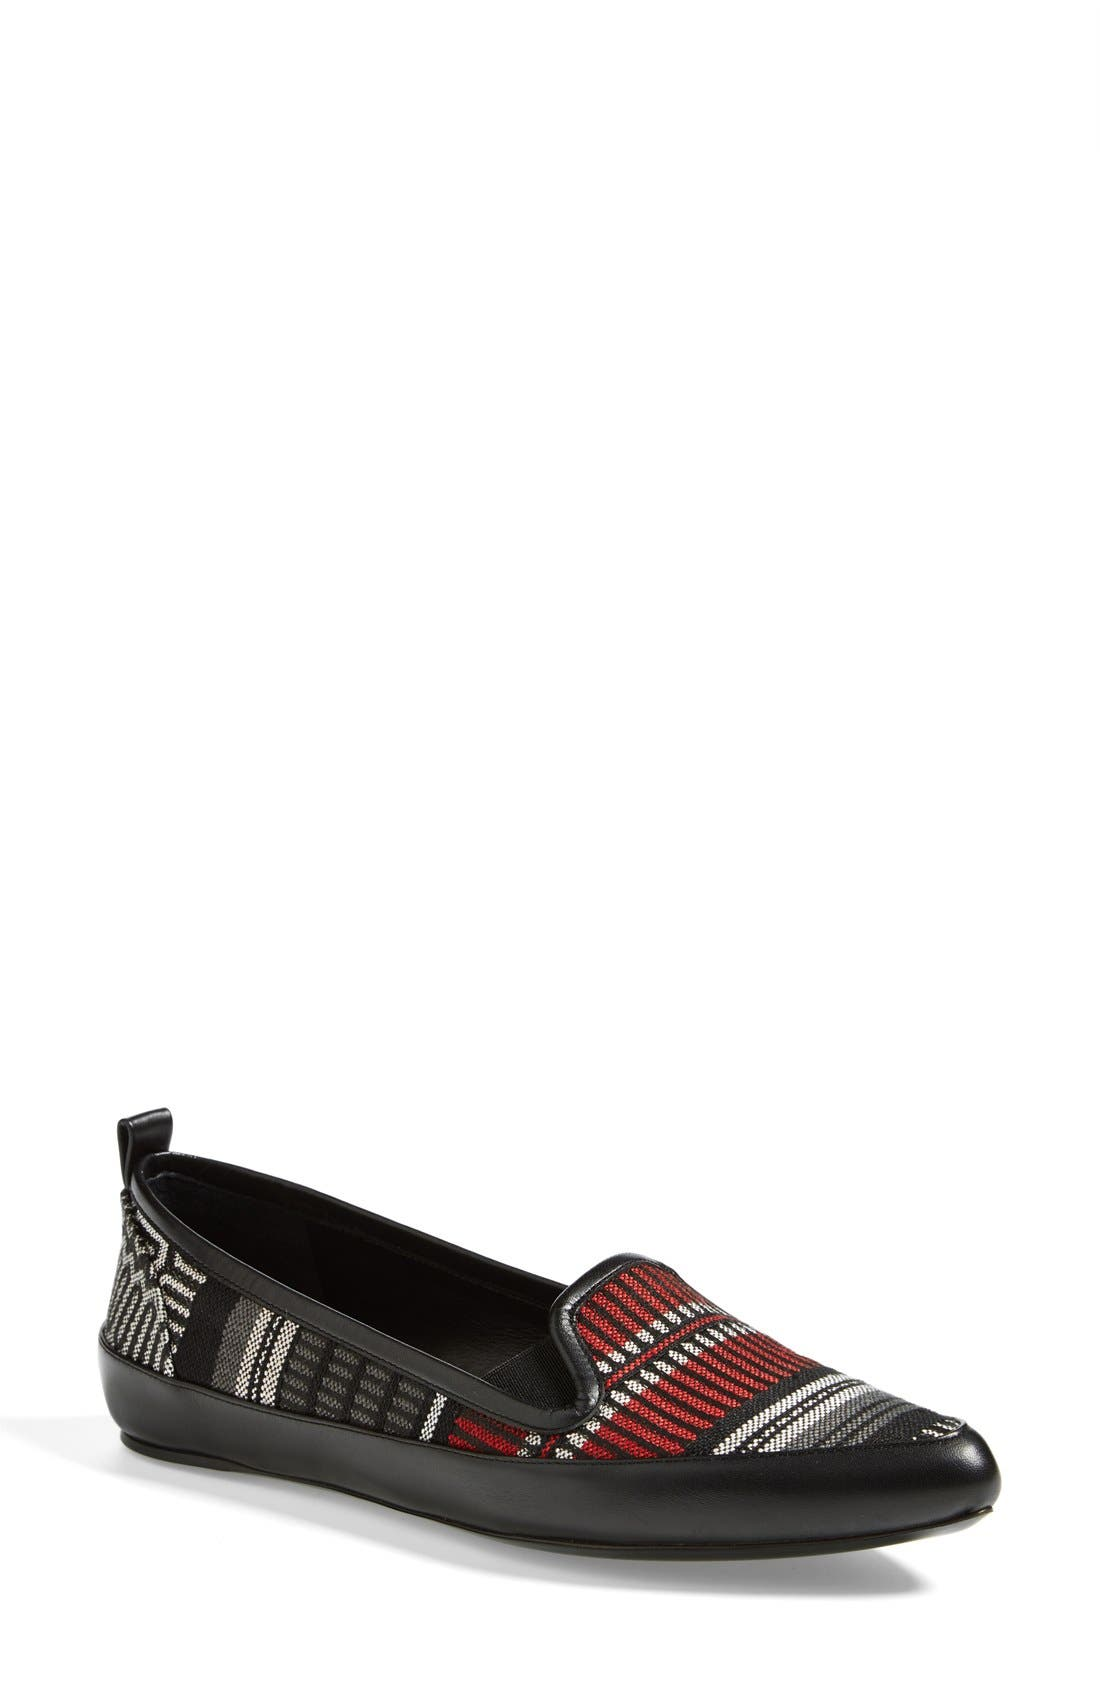 Alternate Image 1 Selected - Proenza Schouler Pointy Toe Moccasin